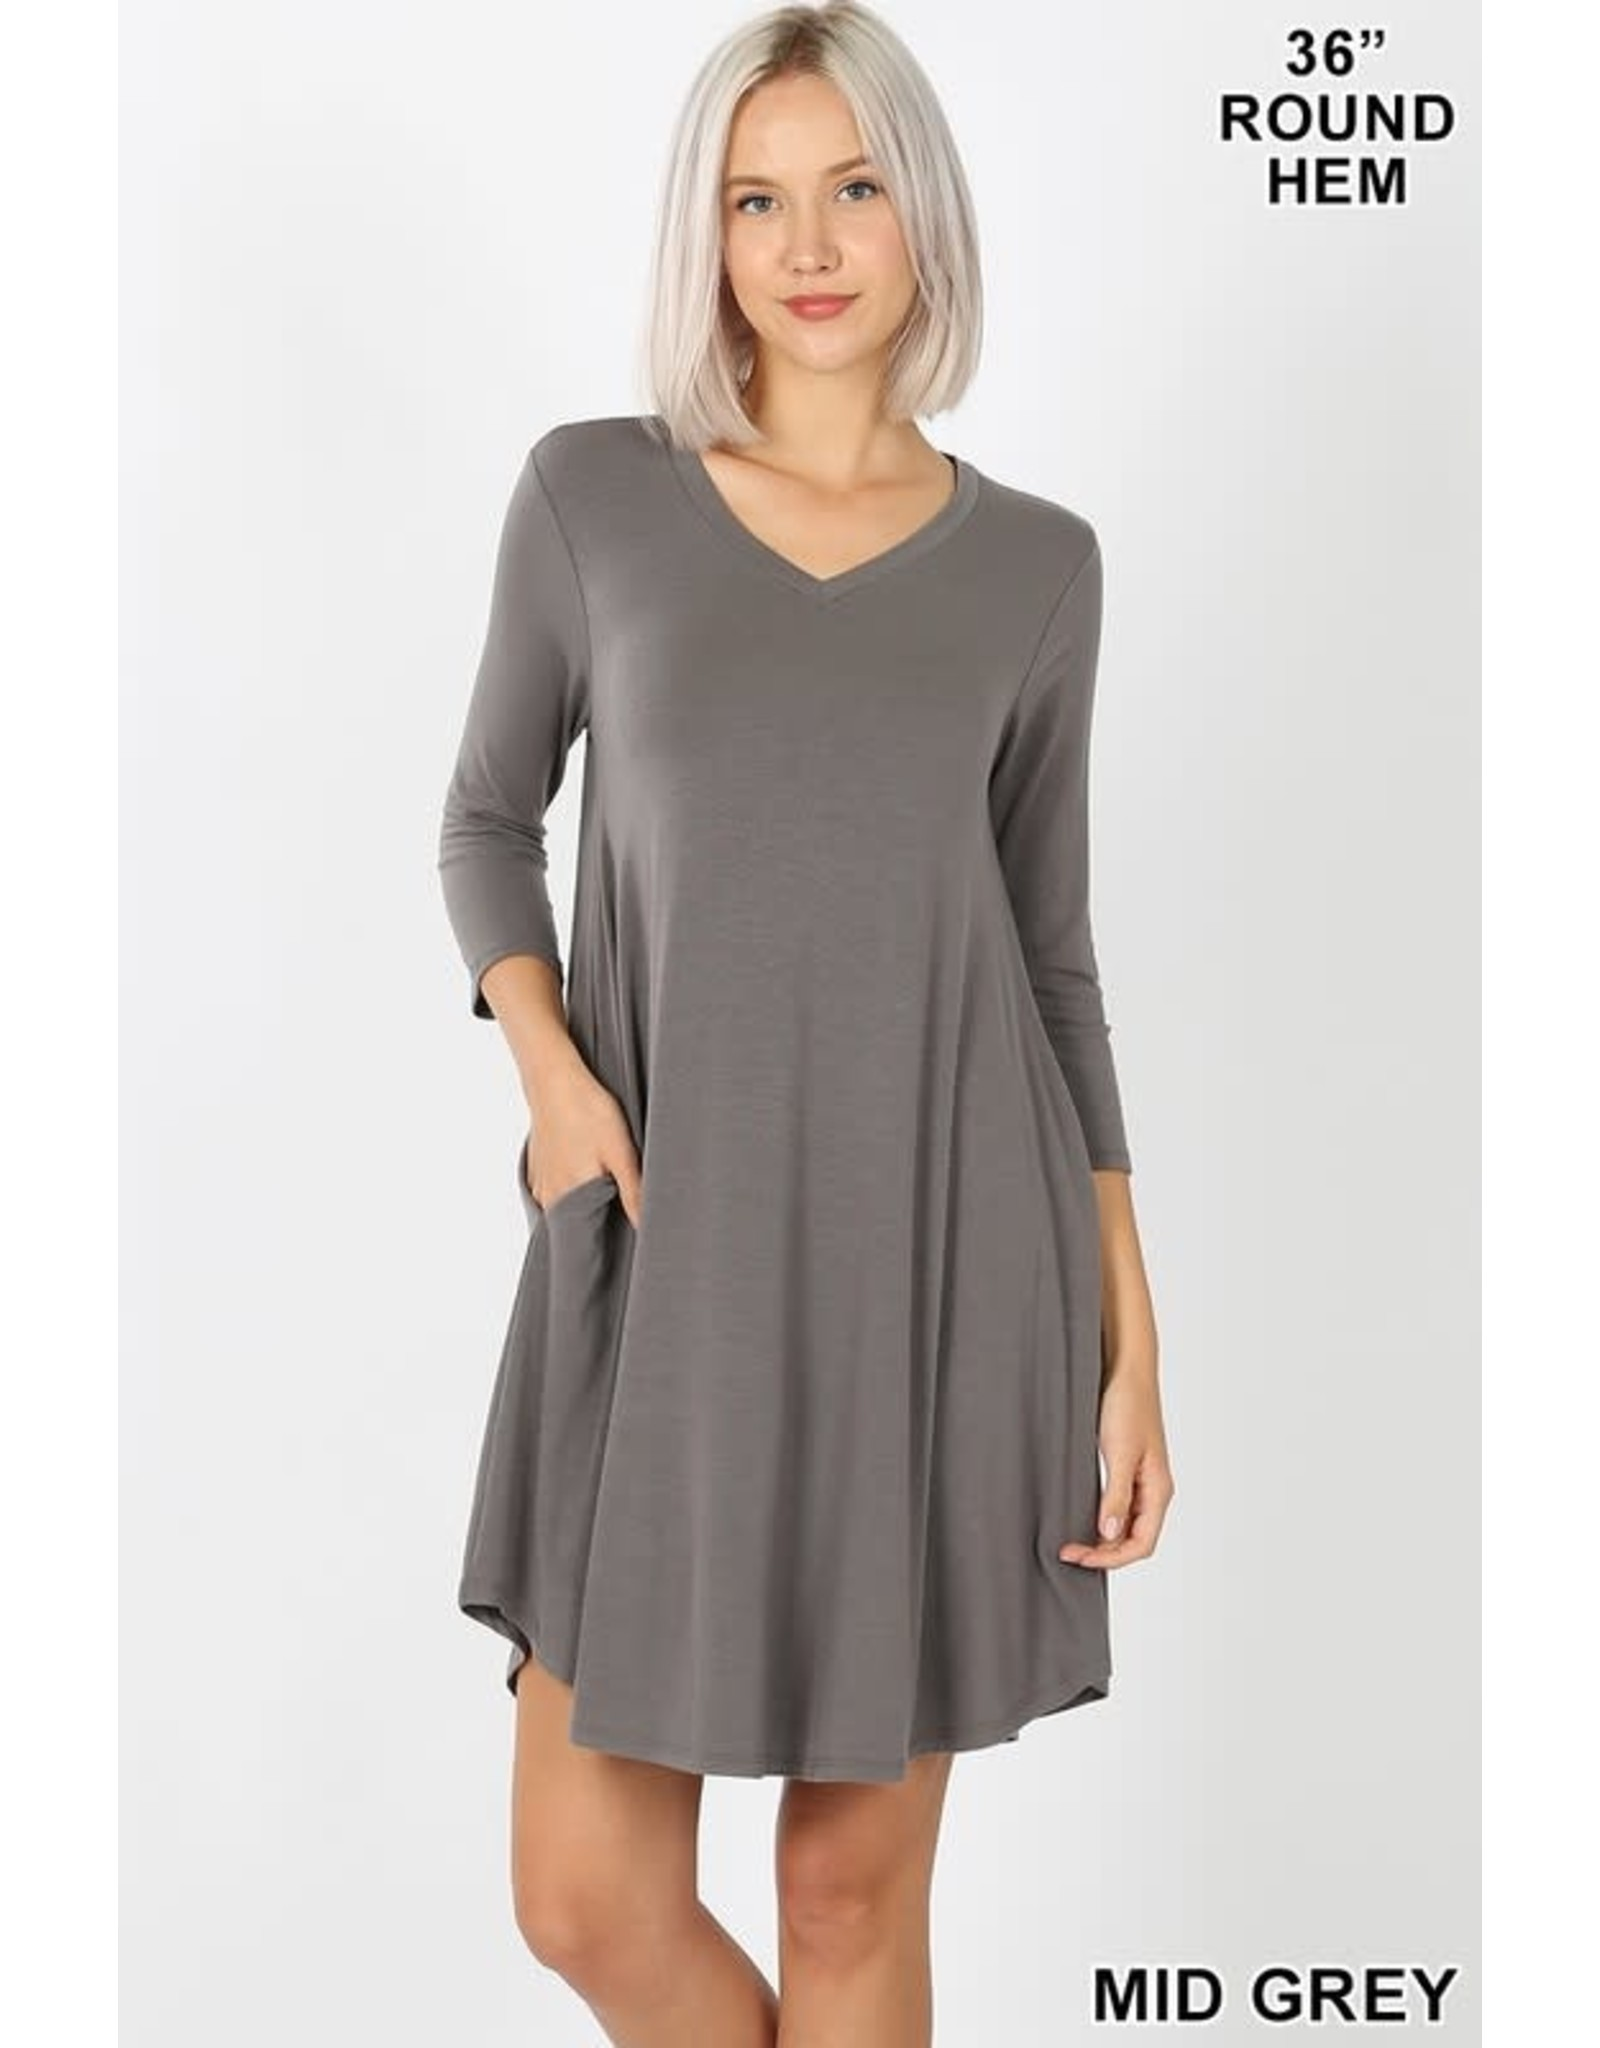 MID GREY 3/4 SLEEVE ROUND NECK DRESS W/ POCKETS